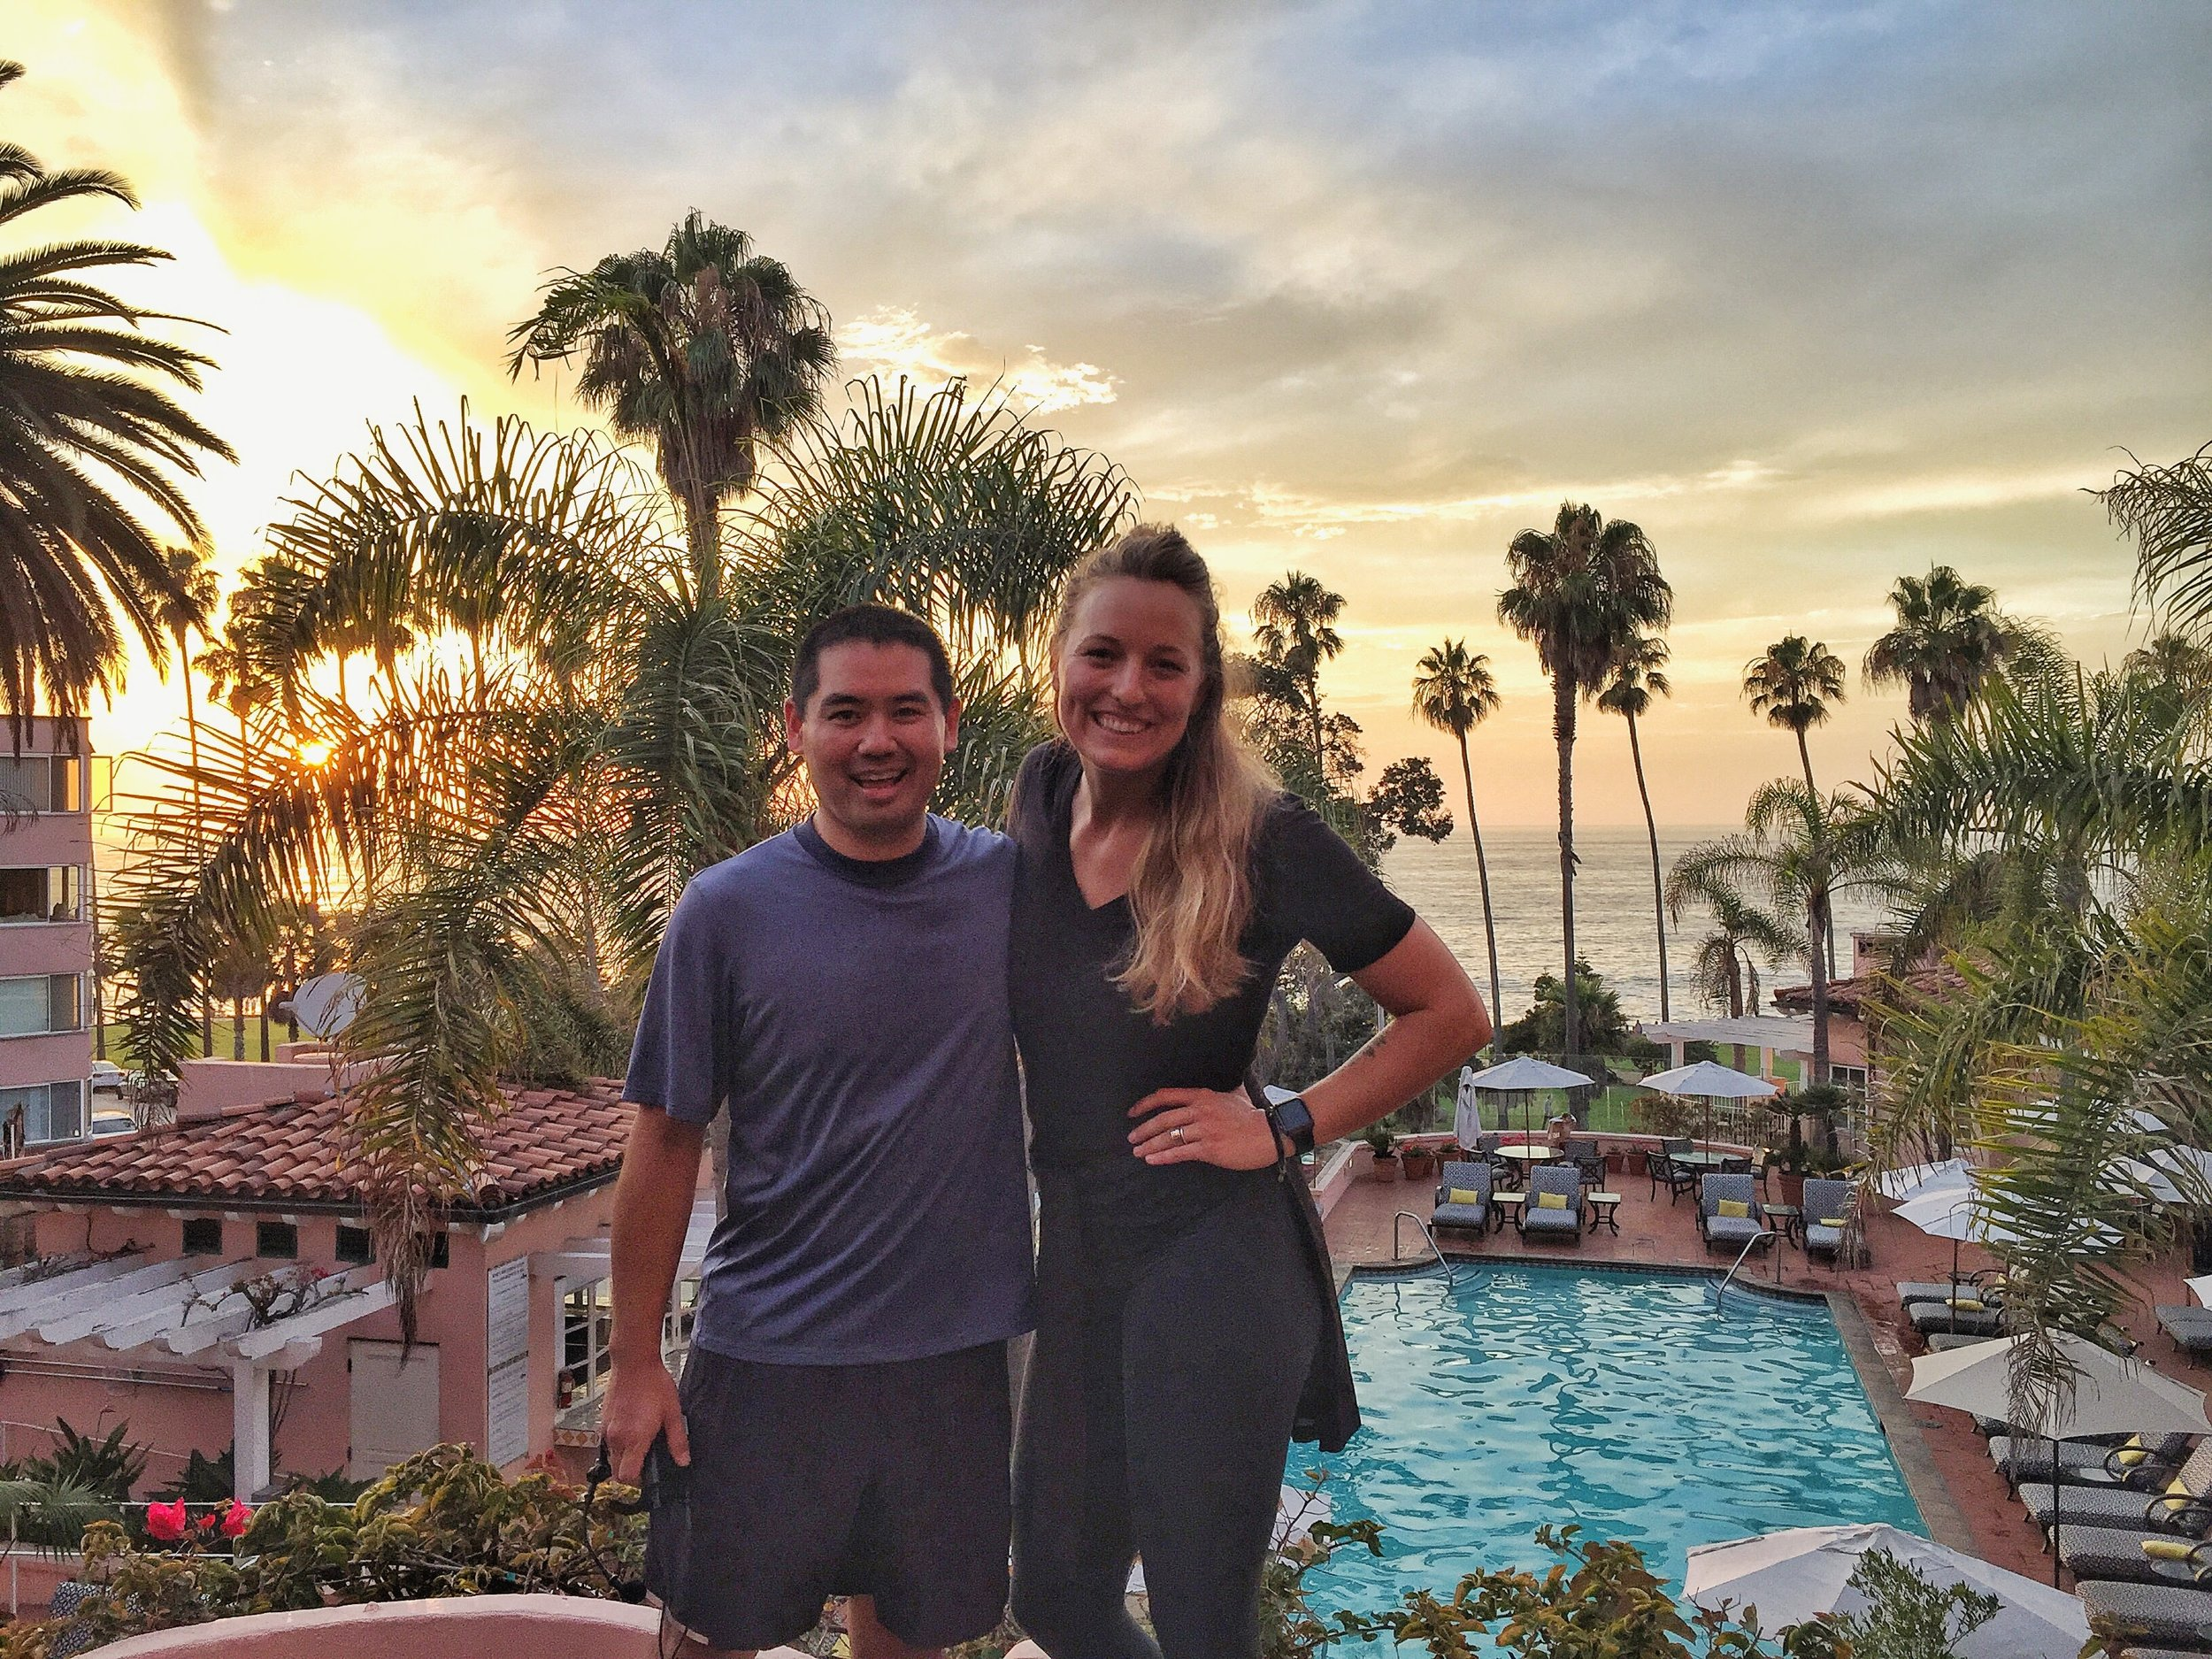 San Diego yoga DJ, Justin Kanoya (left), and yoga instructor, Brett Timmons pose after the Savasana at Sunset event held on August 1 at La Valencia.